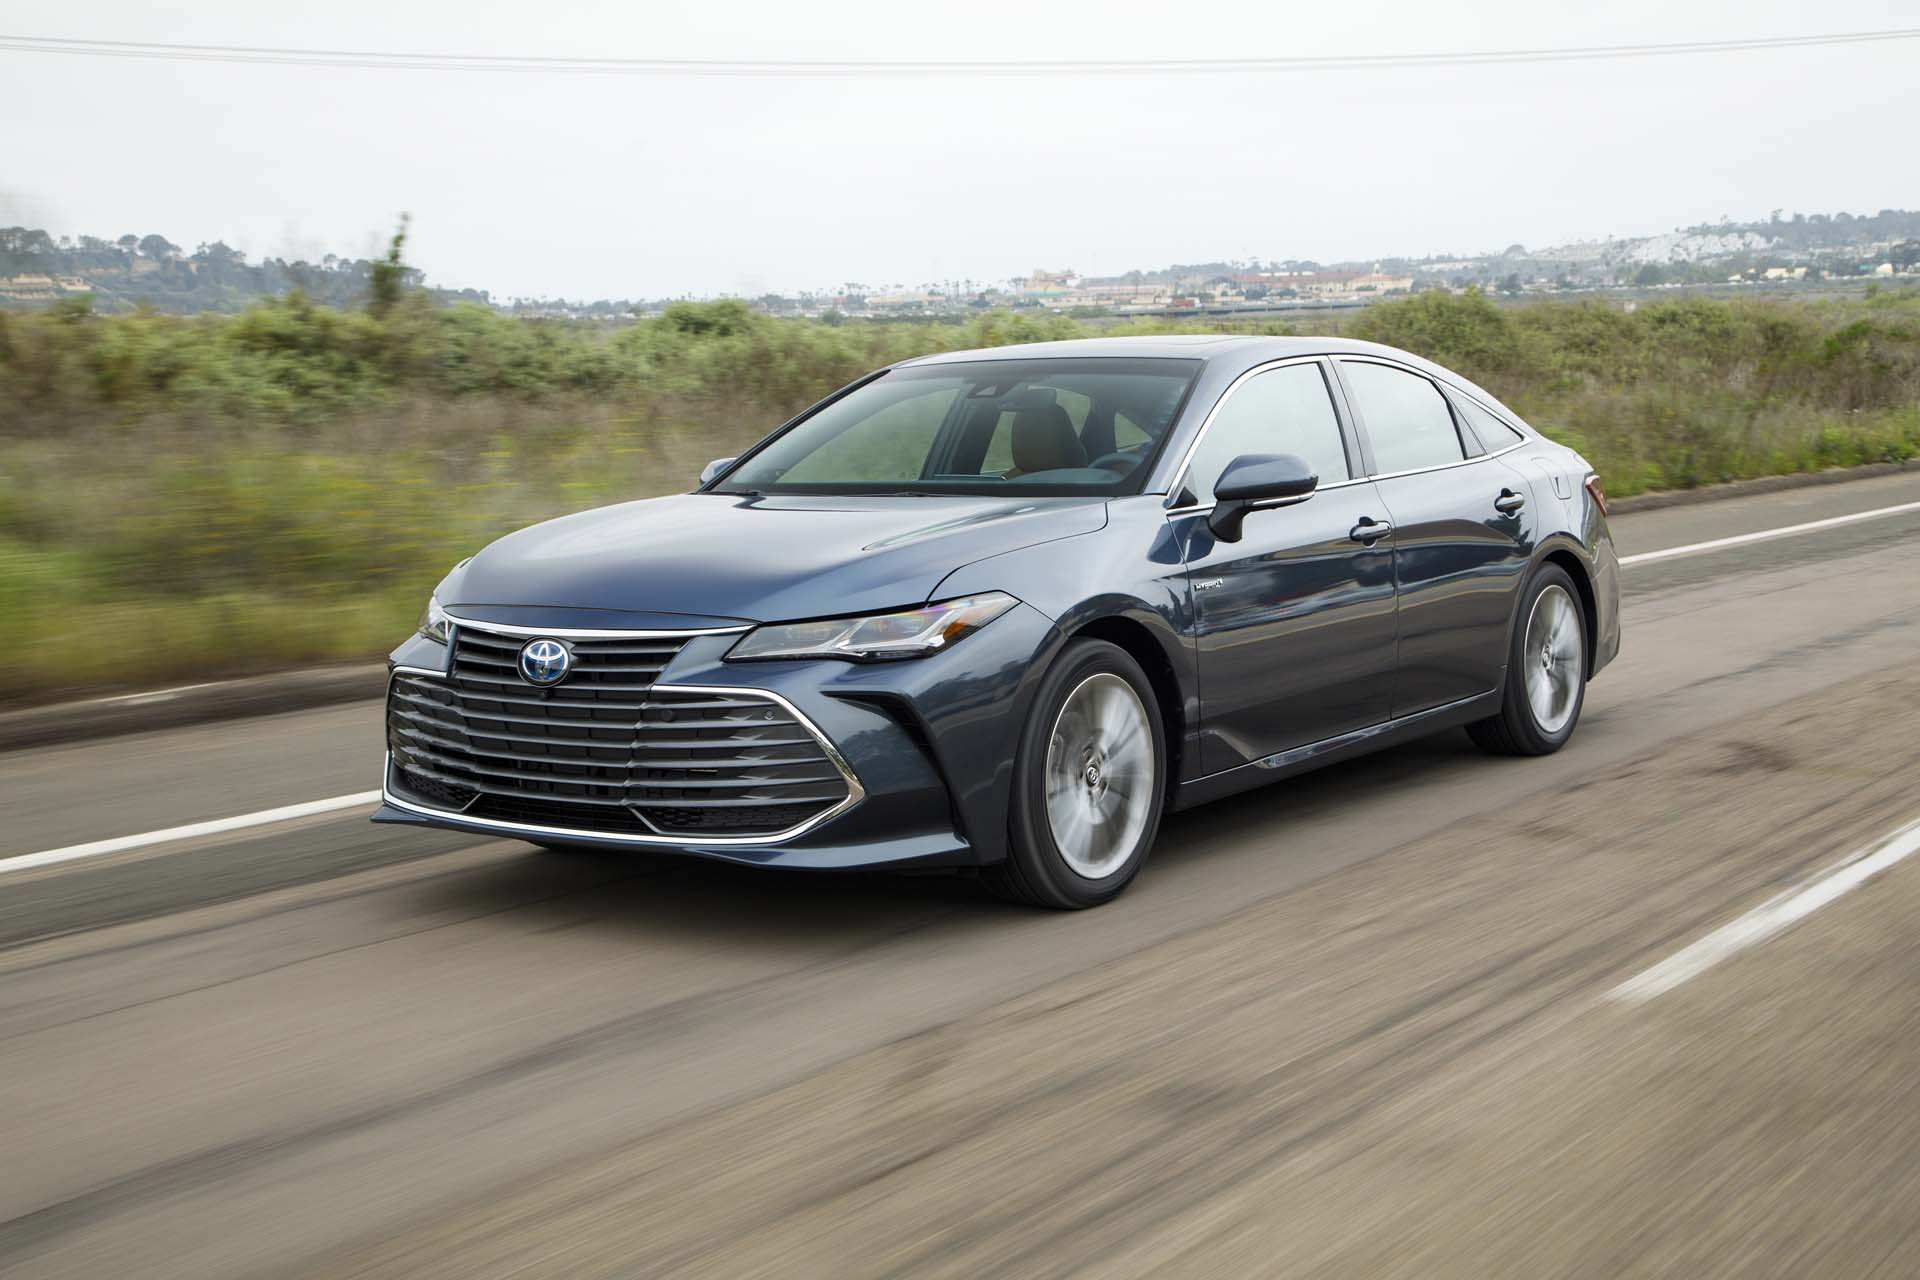 31 Best Review 2019 Toyota Avalon Review Specs for 2019 Toyota Avalon Review